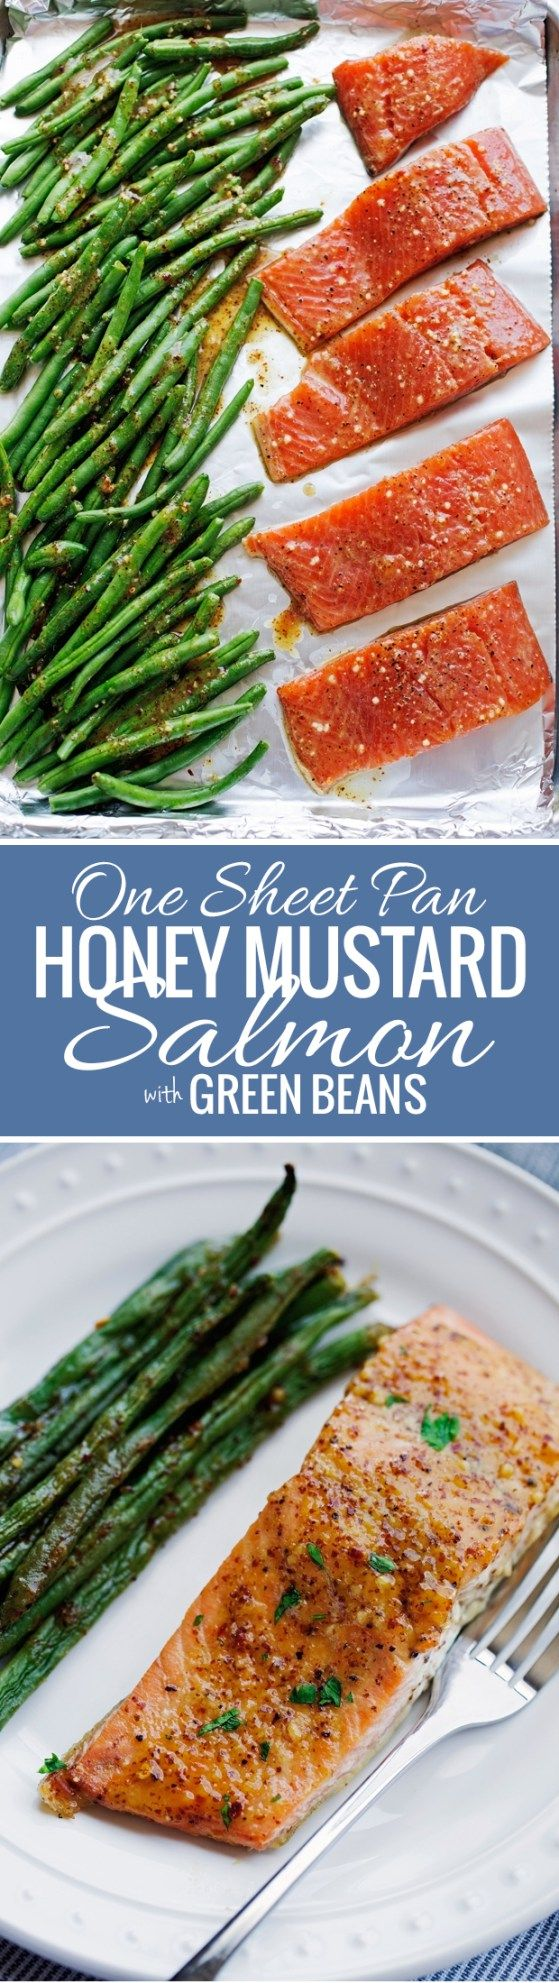 One Sheet Pan Honey Mustard Salmon with Green Beans - An easy ...